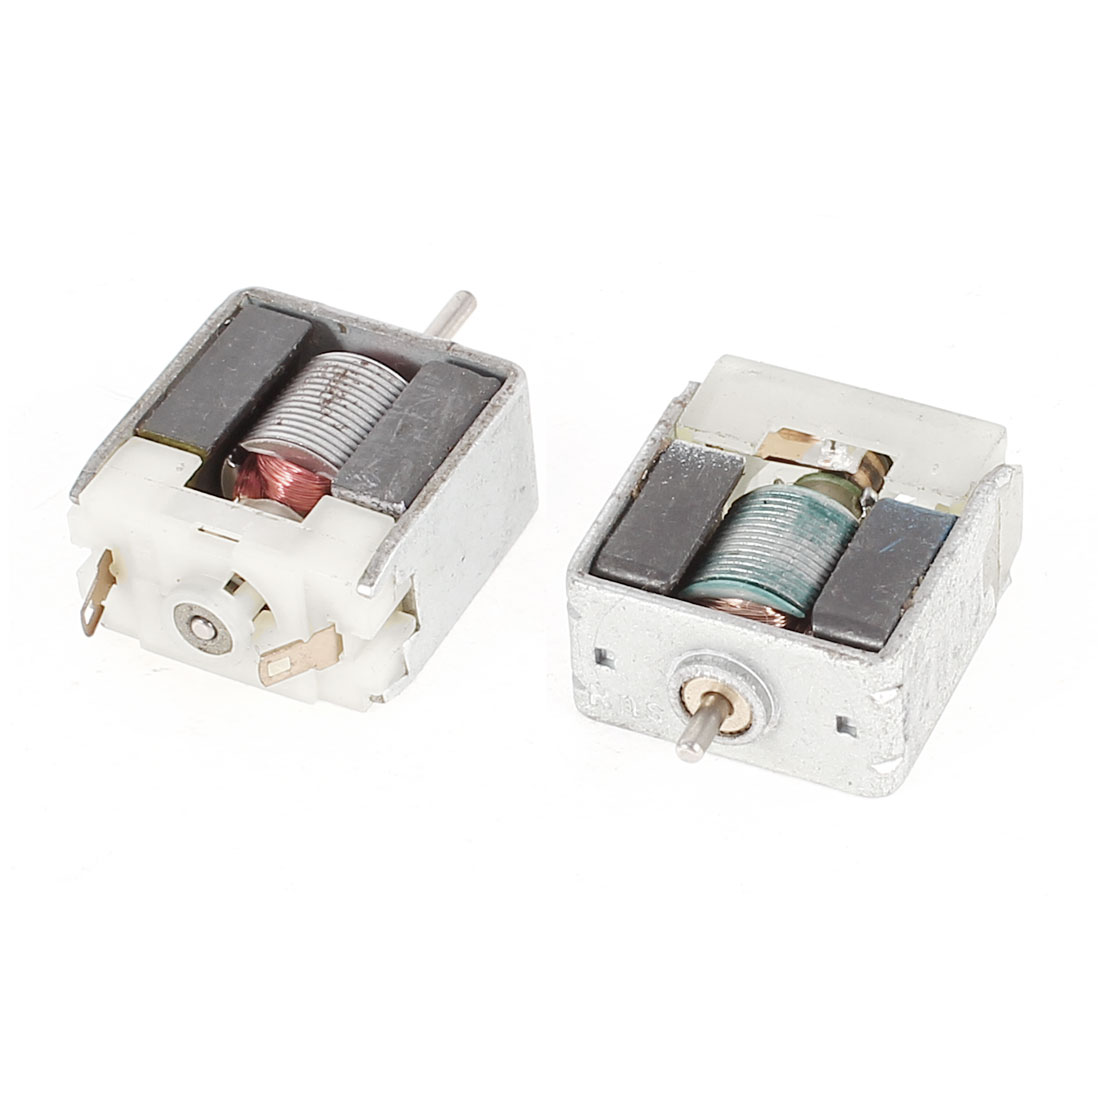 2 Pcs Magnetic Micro Motor 12000RPM DC 3V 19x18x9mm for Toys DIY